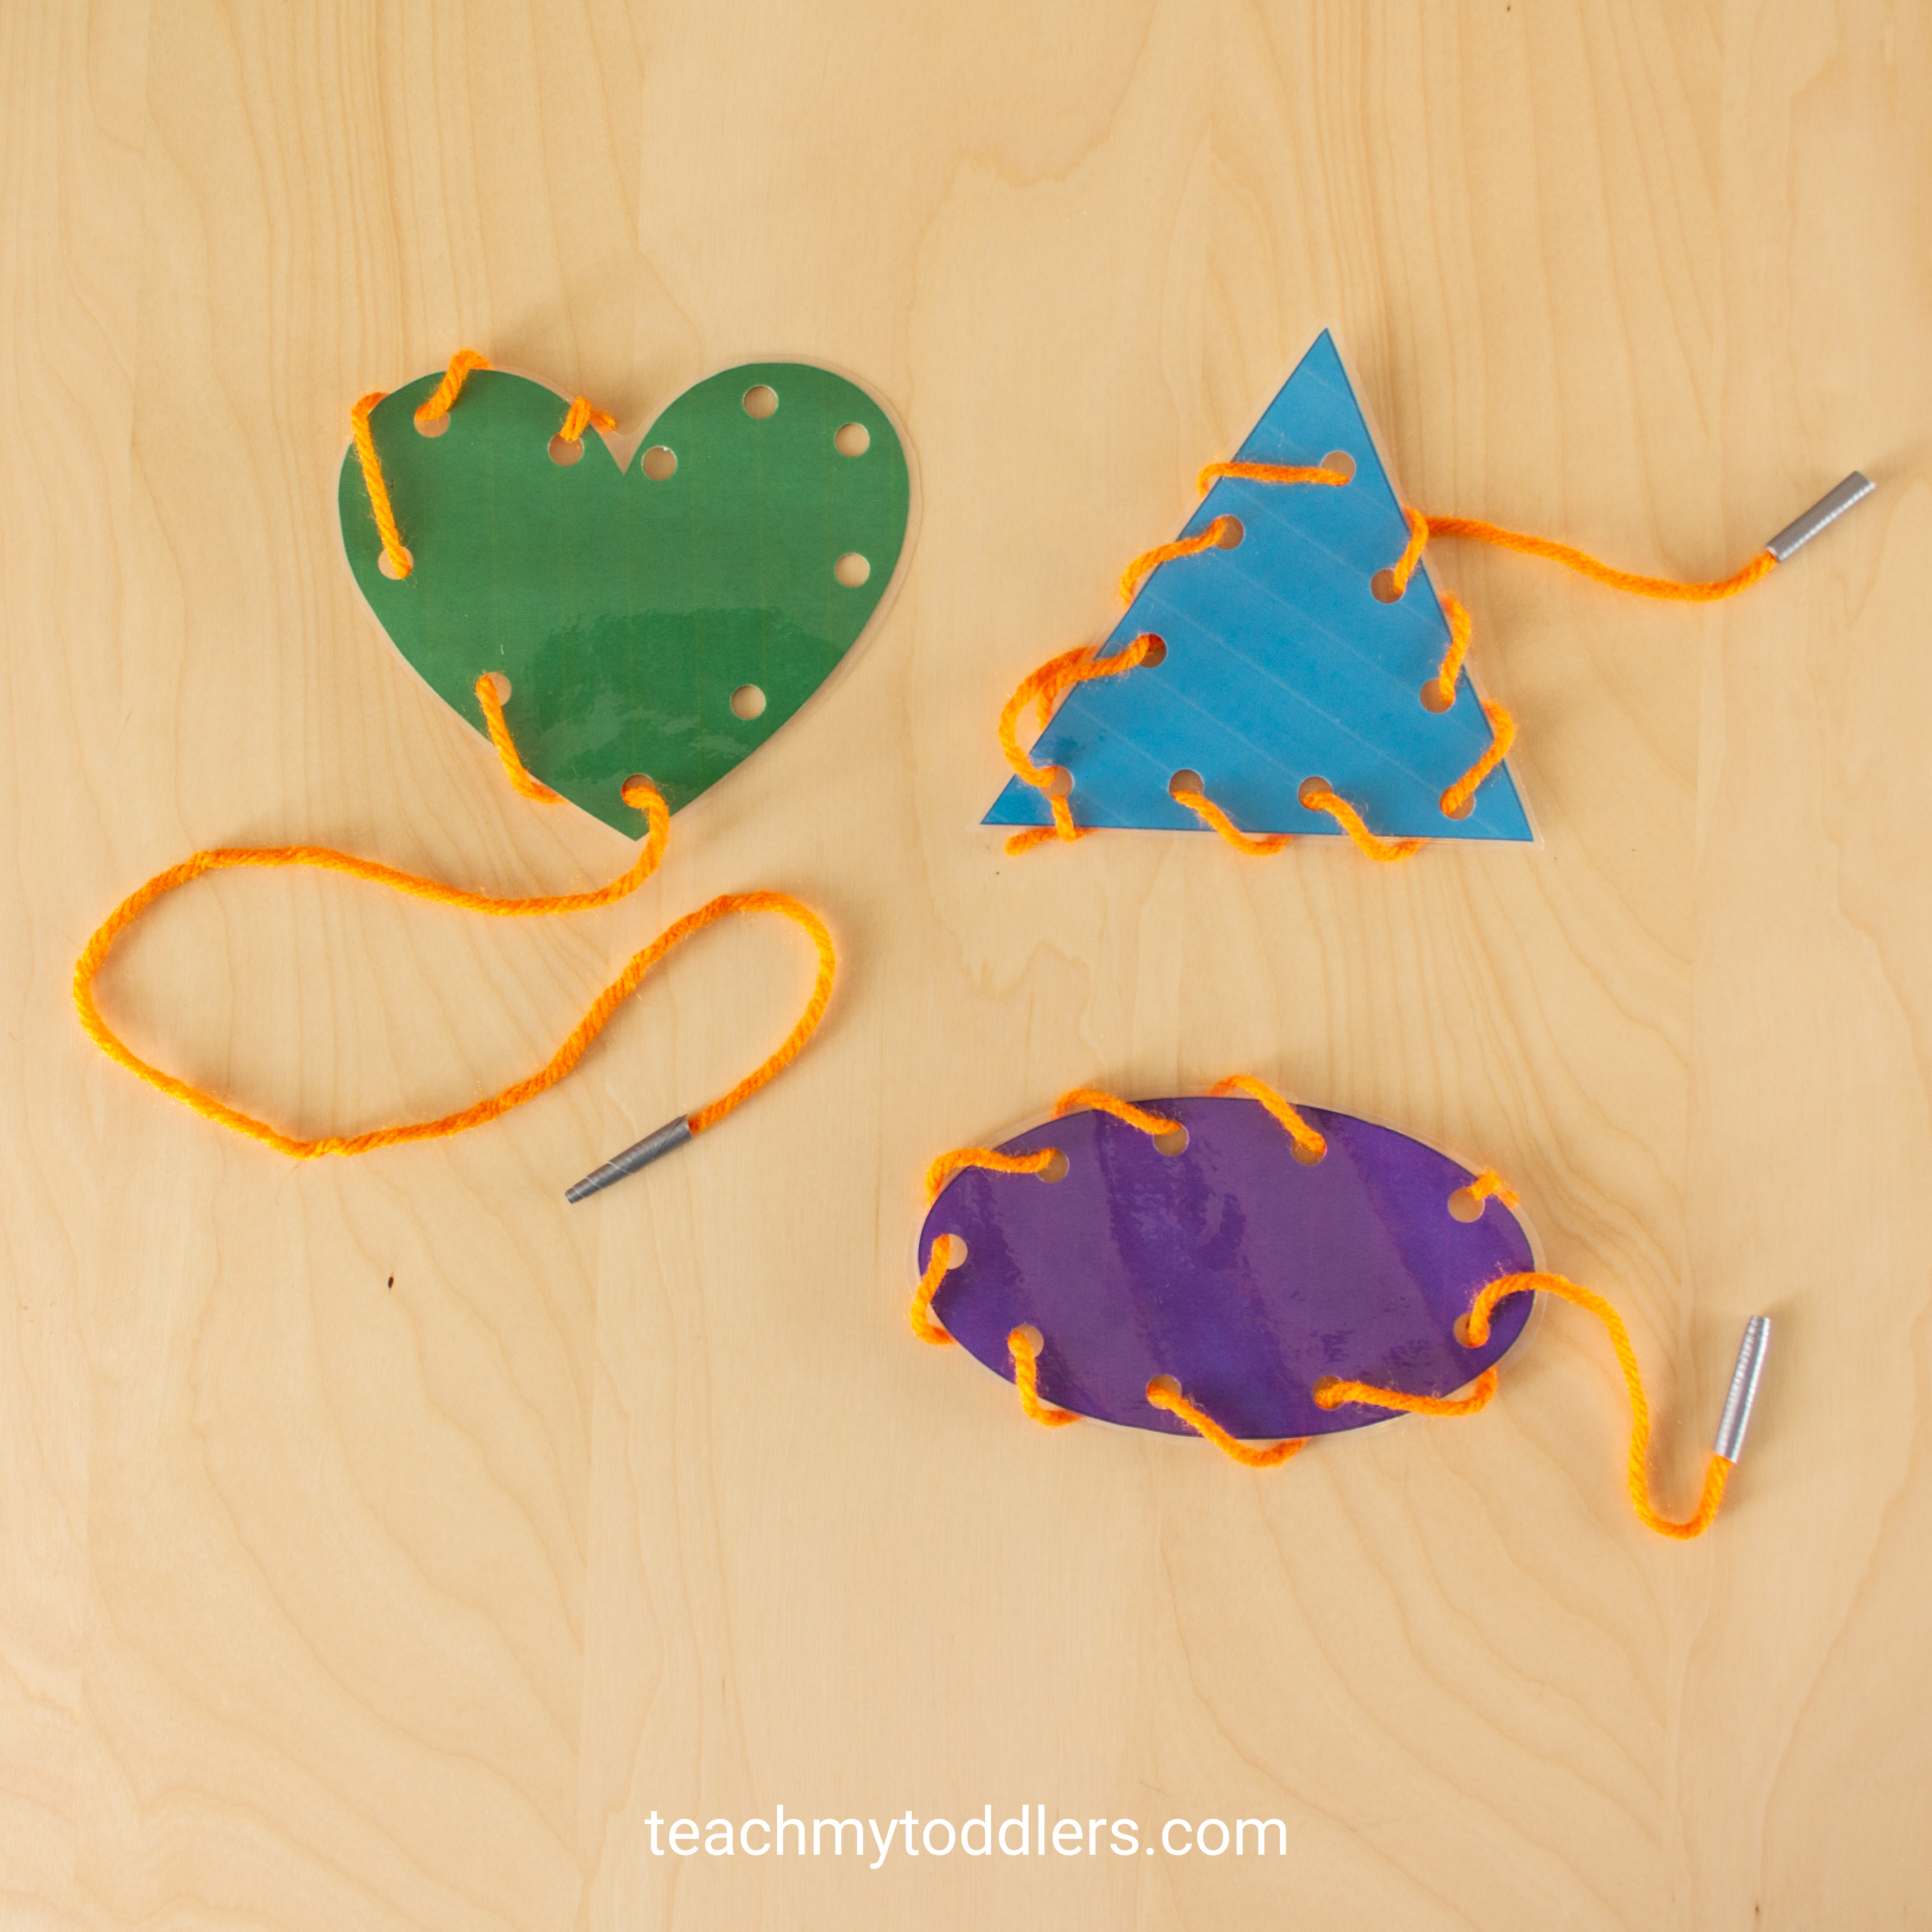 Learn how to use these lacing cards to teach your toddlers shapes